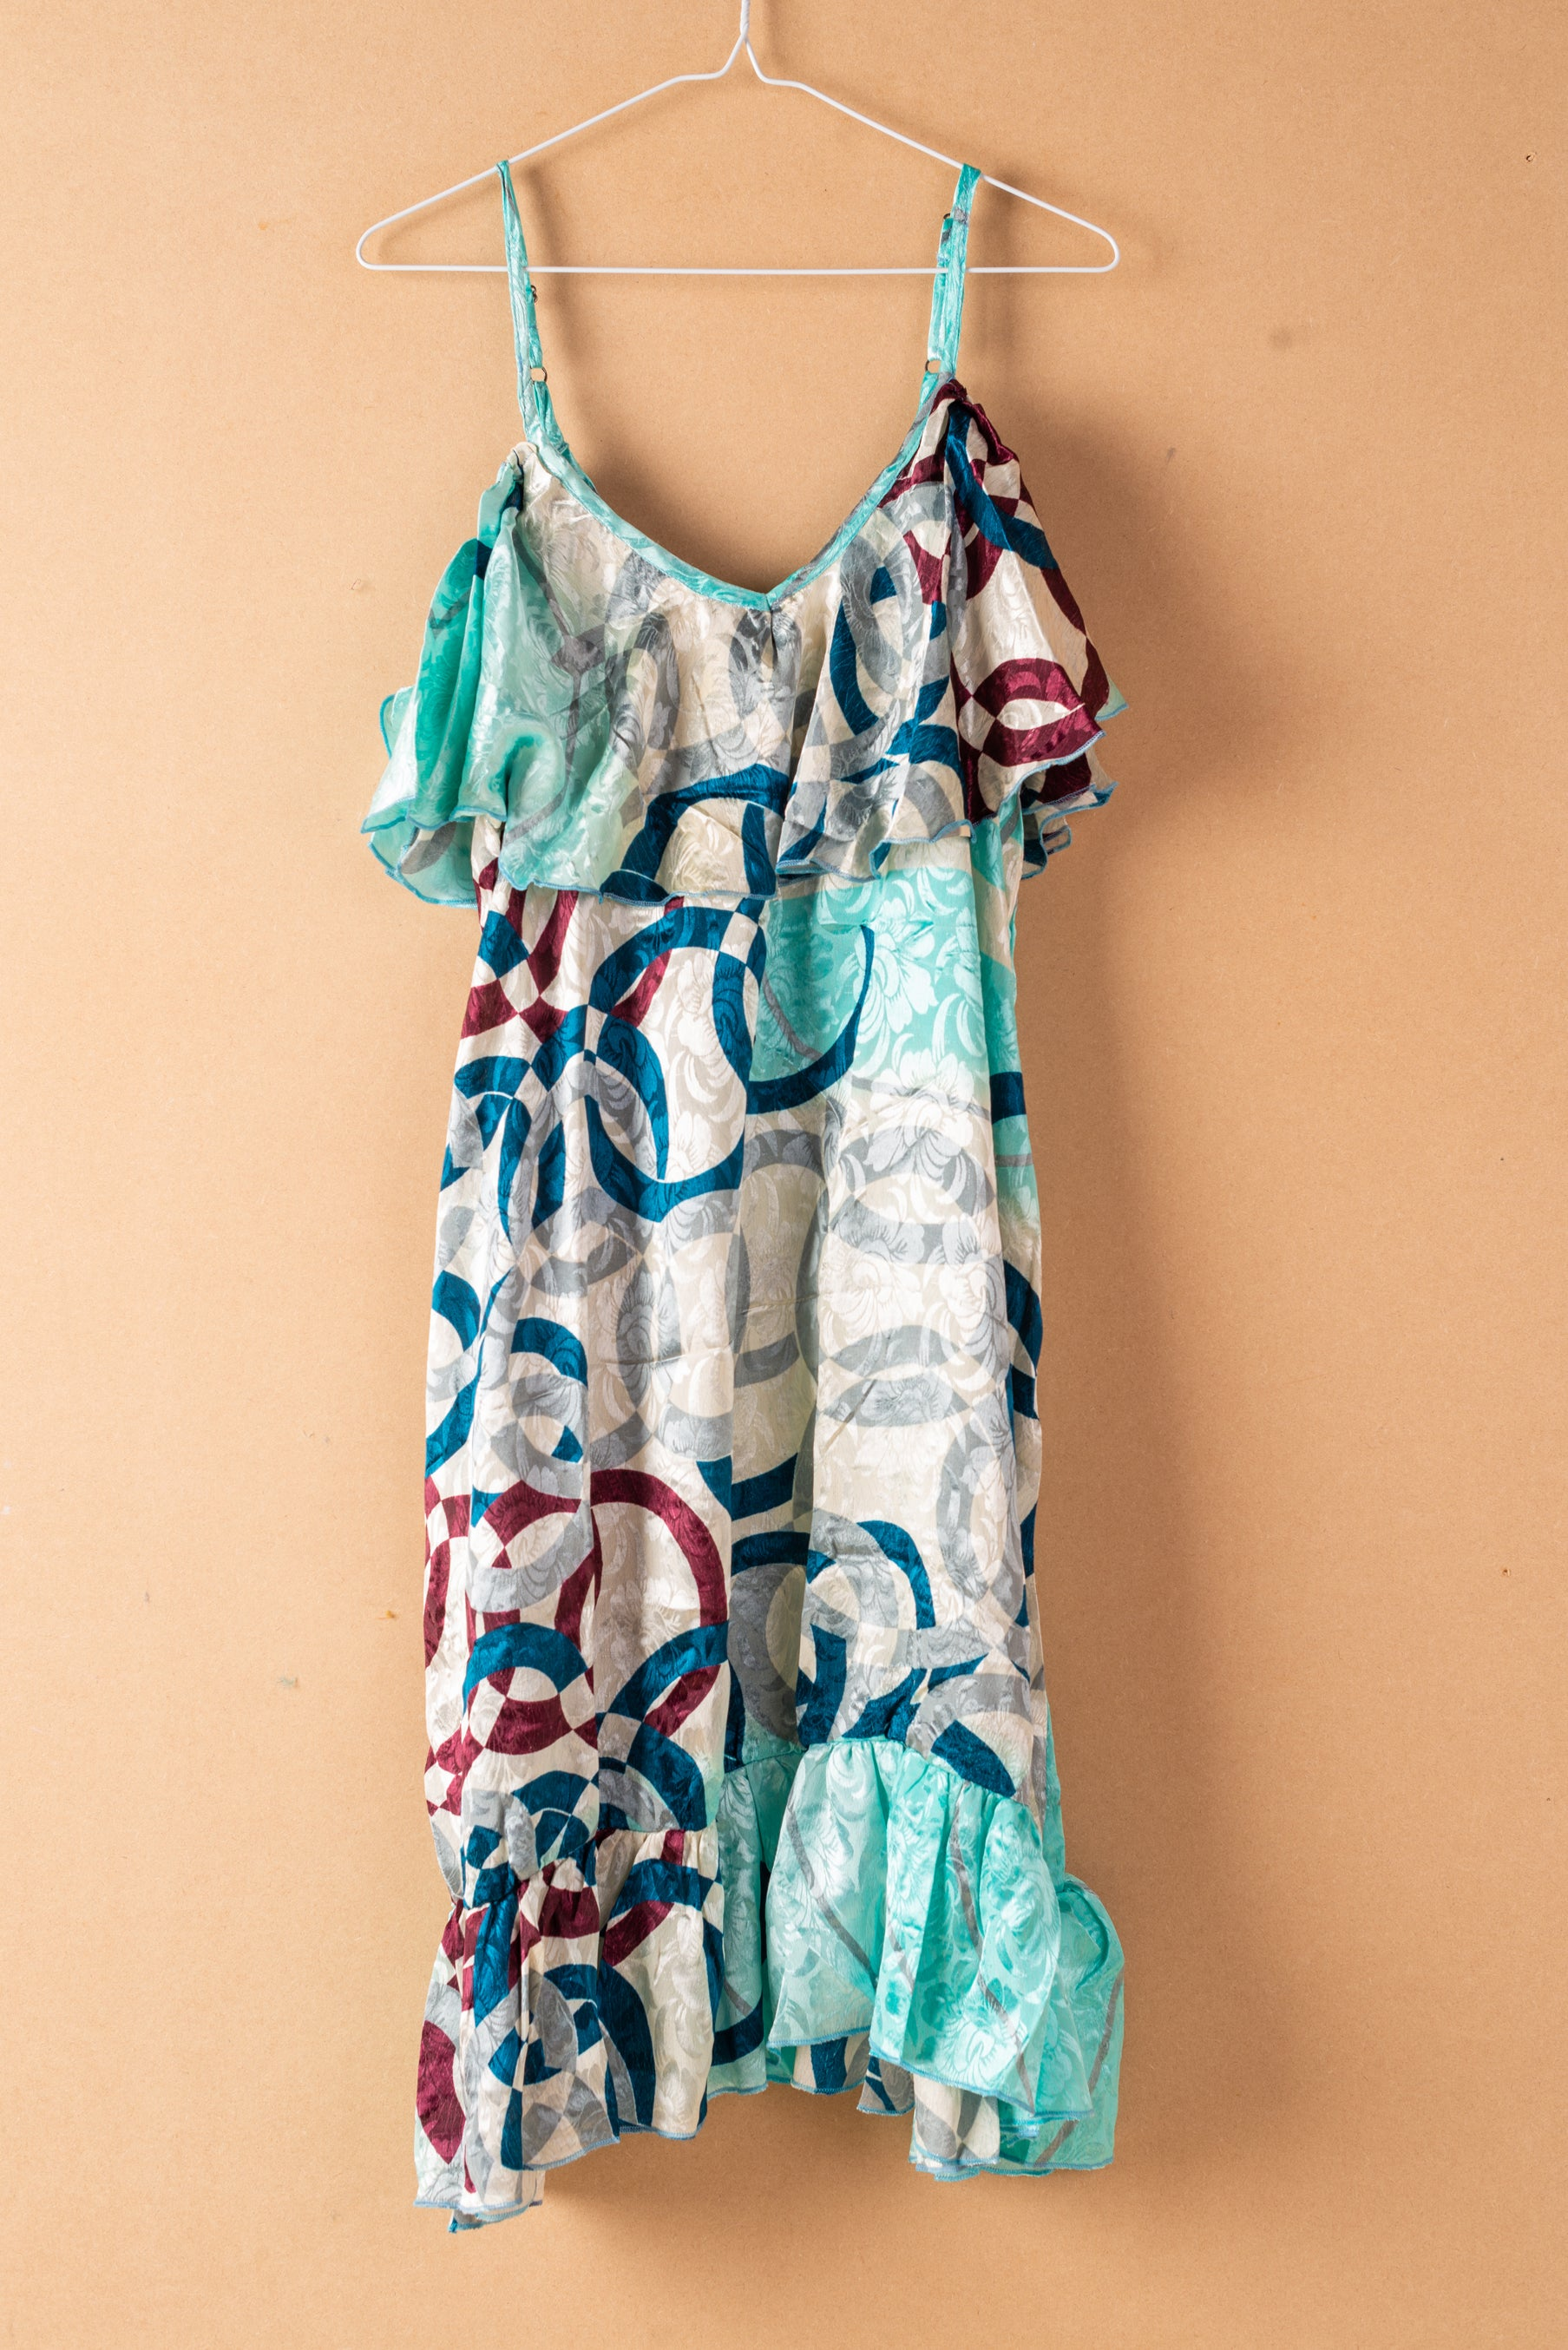 Recycled Silk Short Sleeveless Dress - large - 49